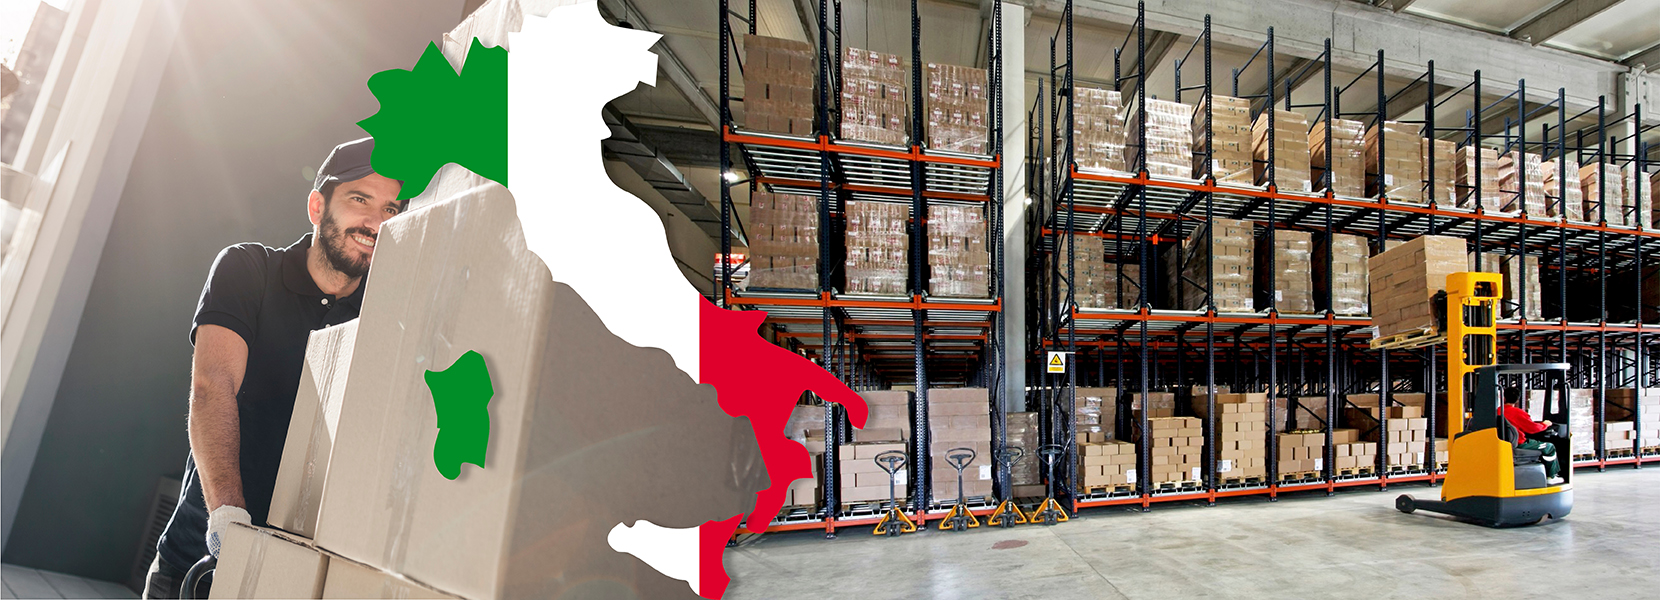 Salesupply opens a new Fulfilment Centre in Verona, Italy